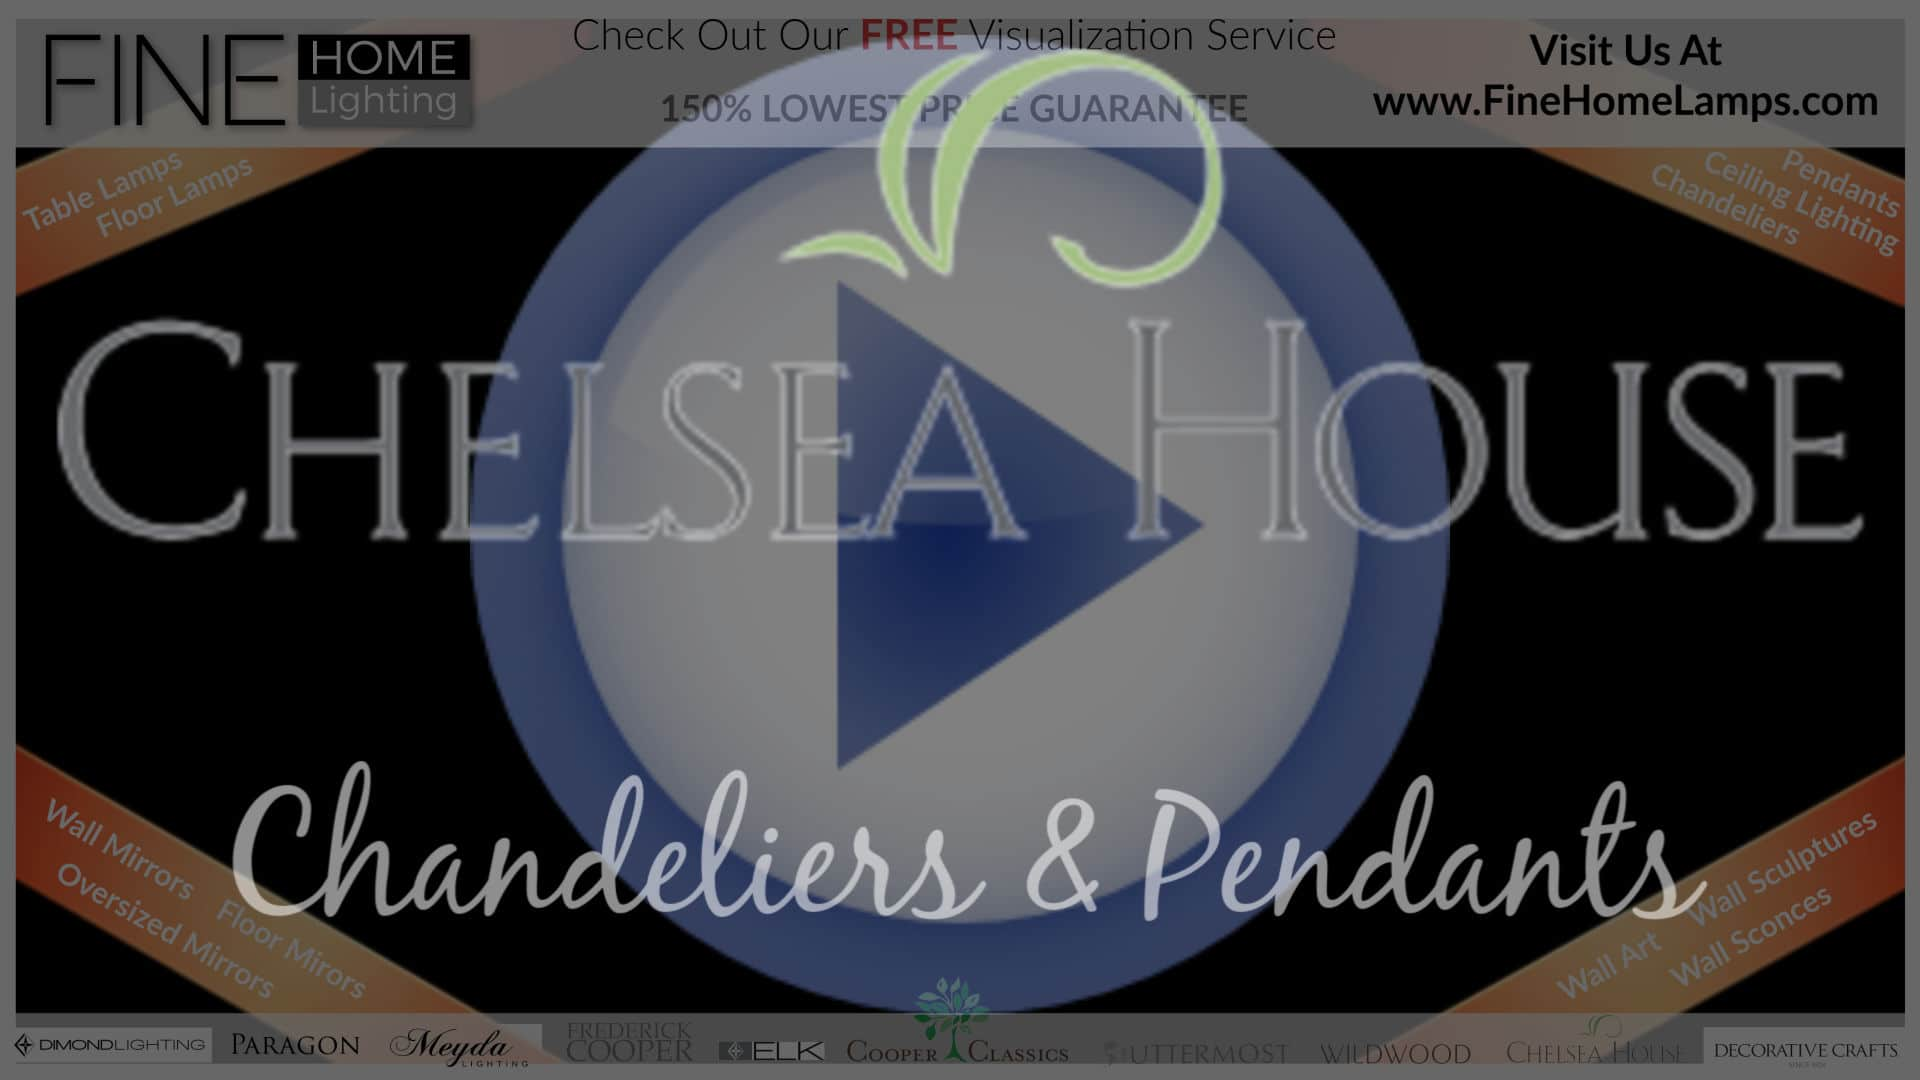 Chelsea-House-Chandeliers-Pendants-Thanks-for-watching-this-video-Get-an-additional-15-percent-off-your-next-purchase-Use-Coupon-Code-VIDEO-1